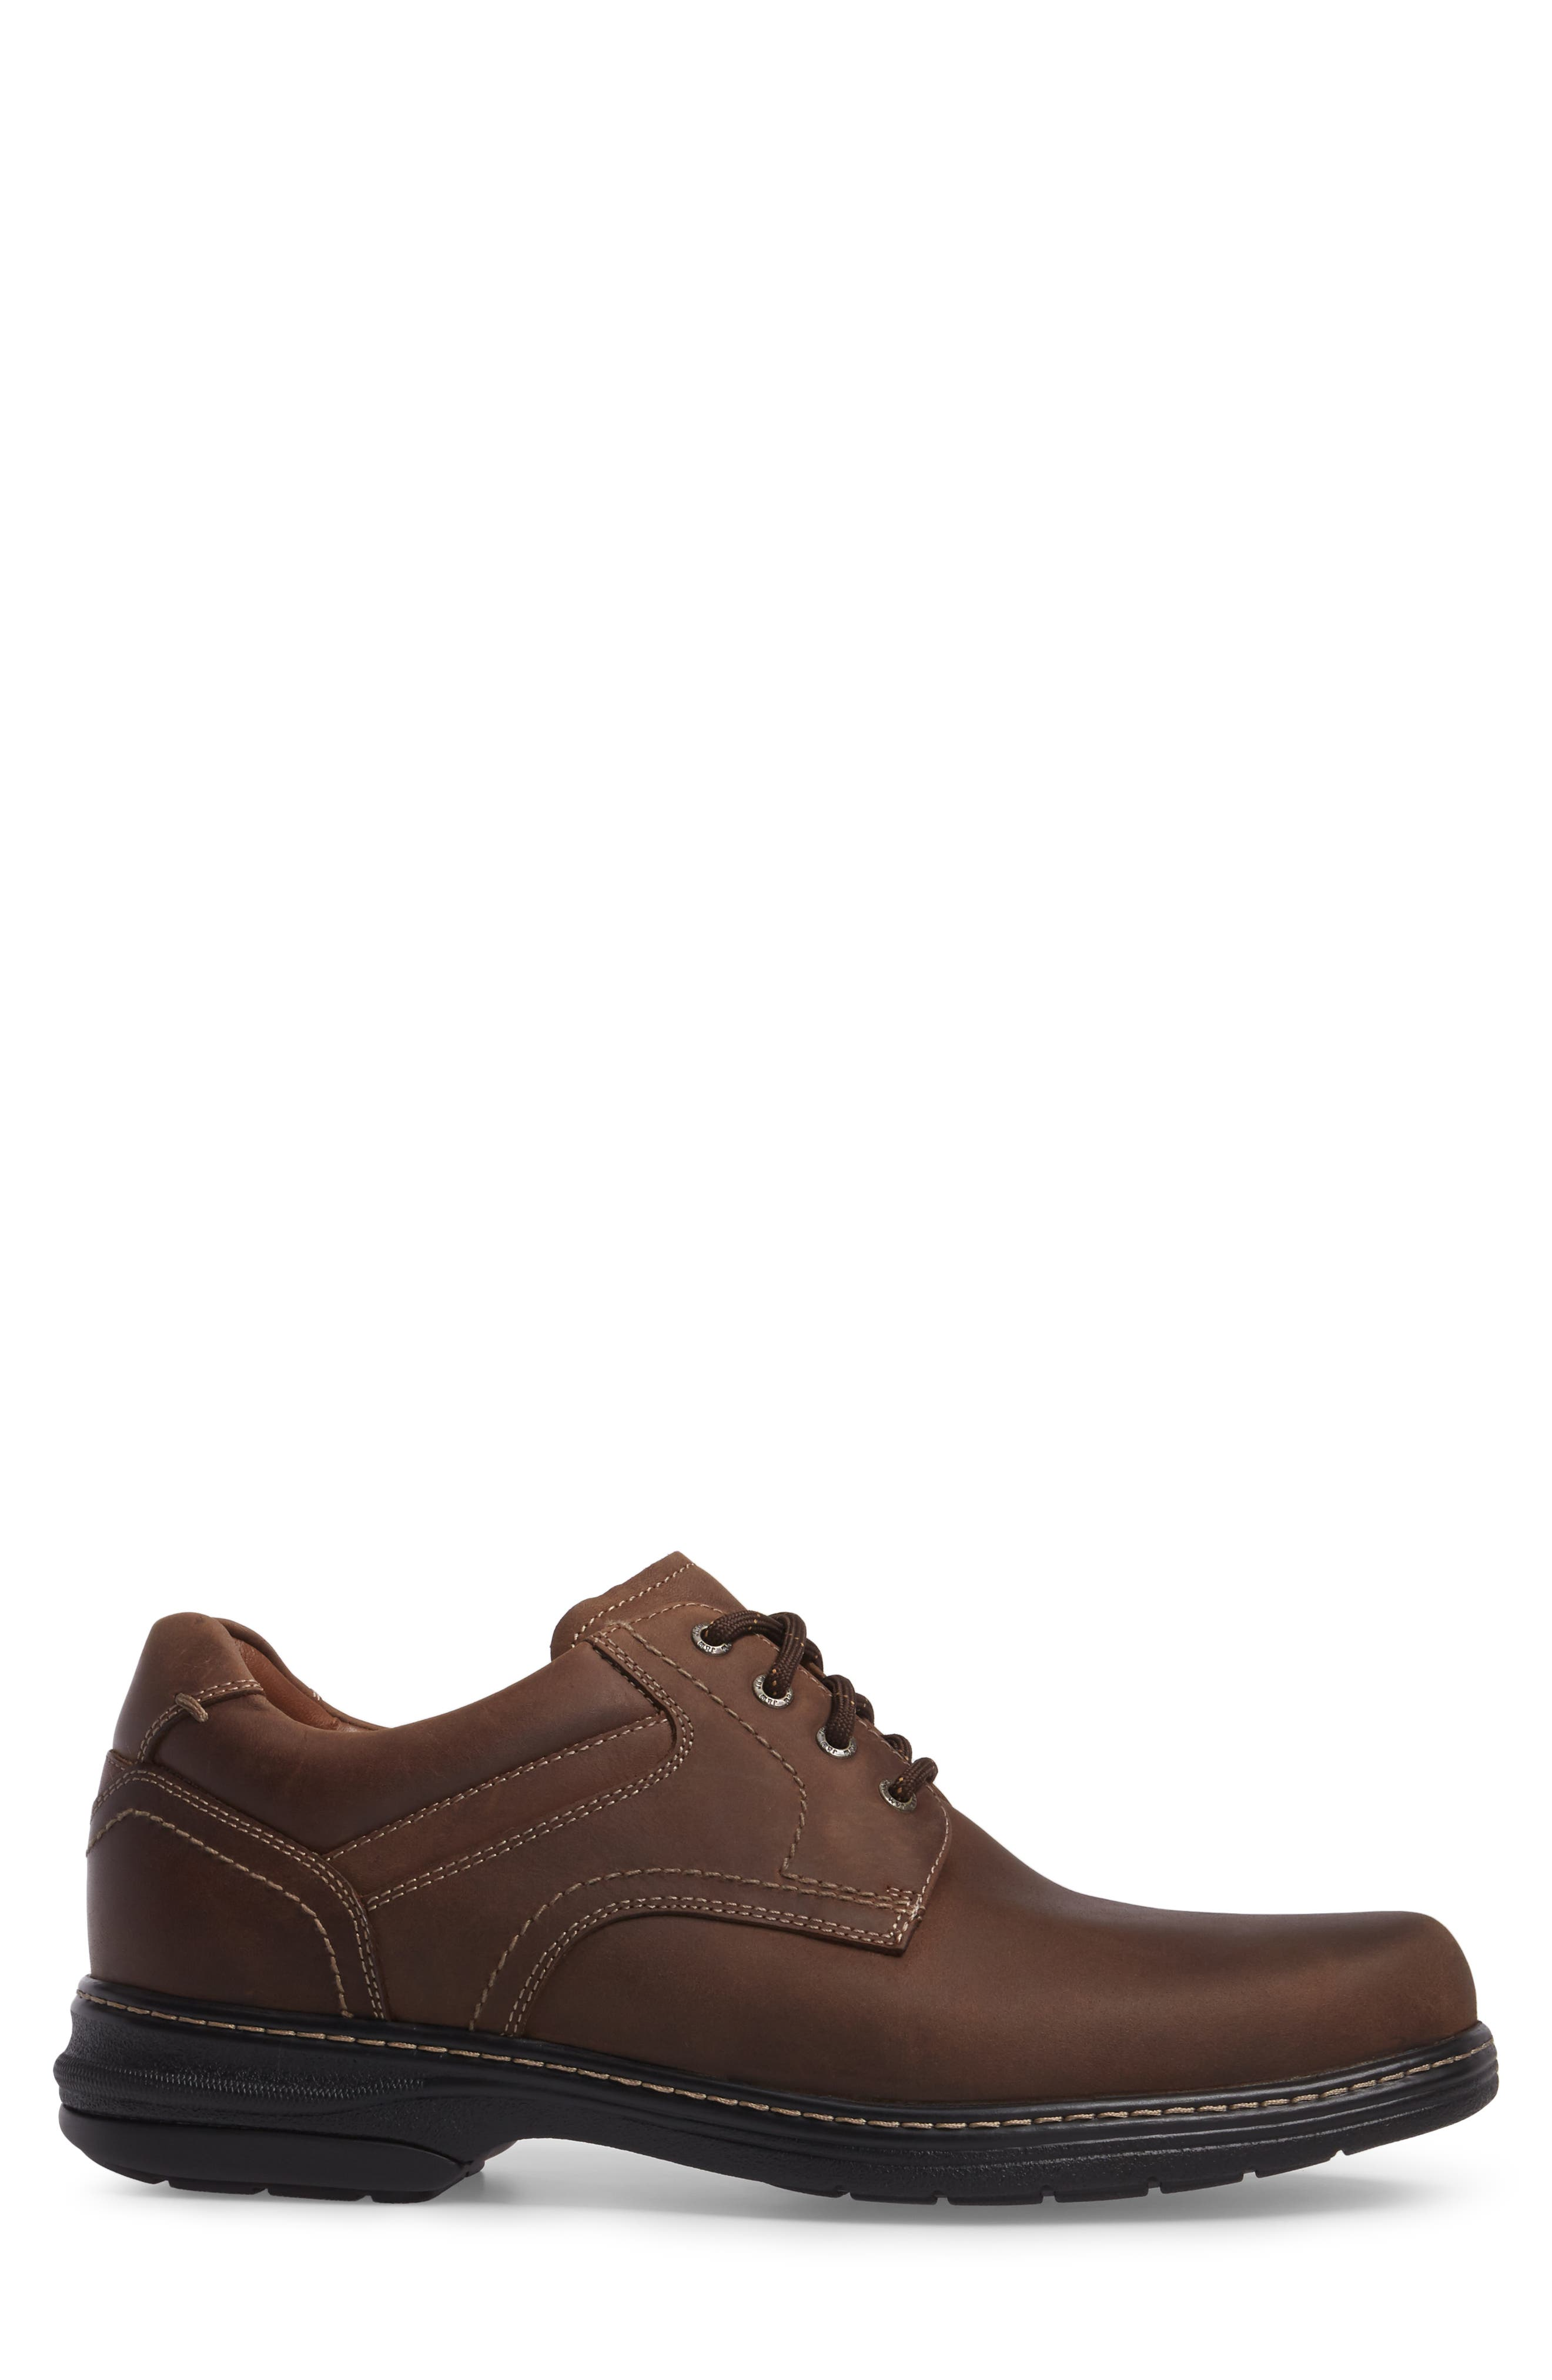 Windham Waterproof Plain Toe Derby,                             Alternate thumbnail 3, color,                             TAN